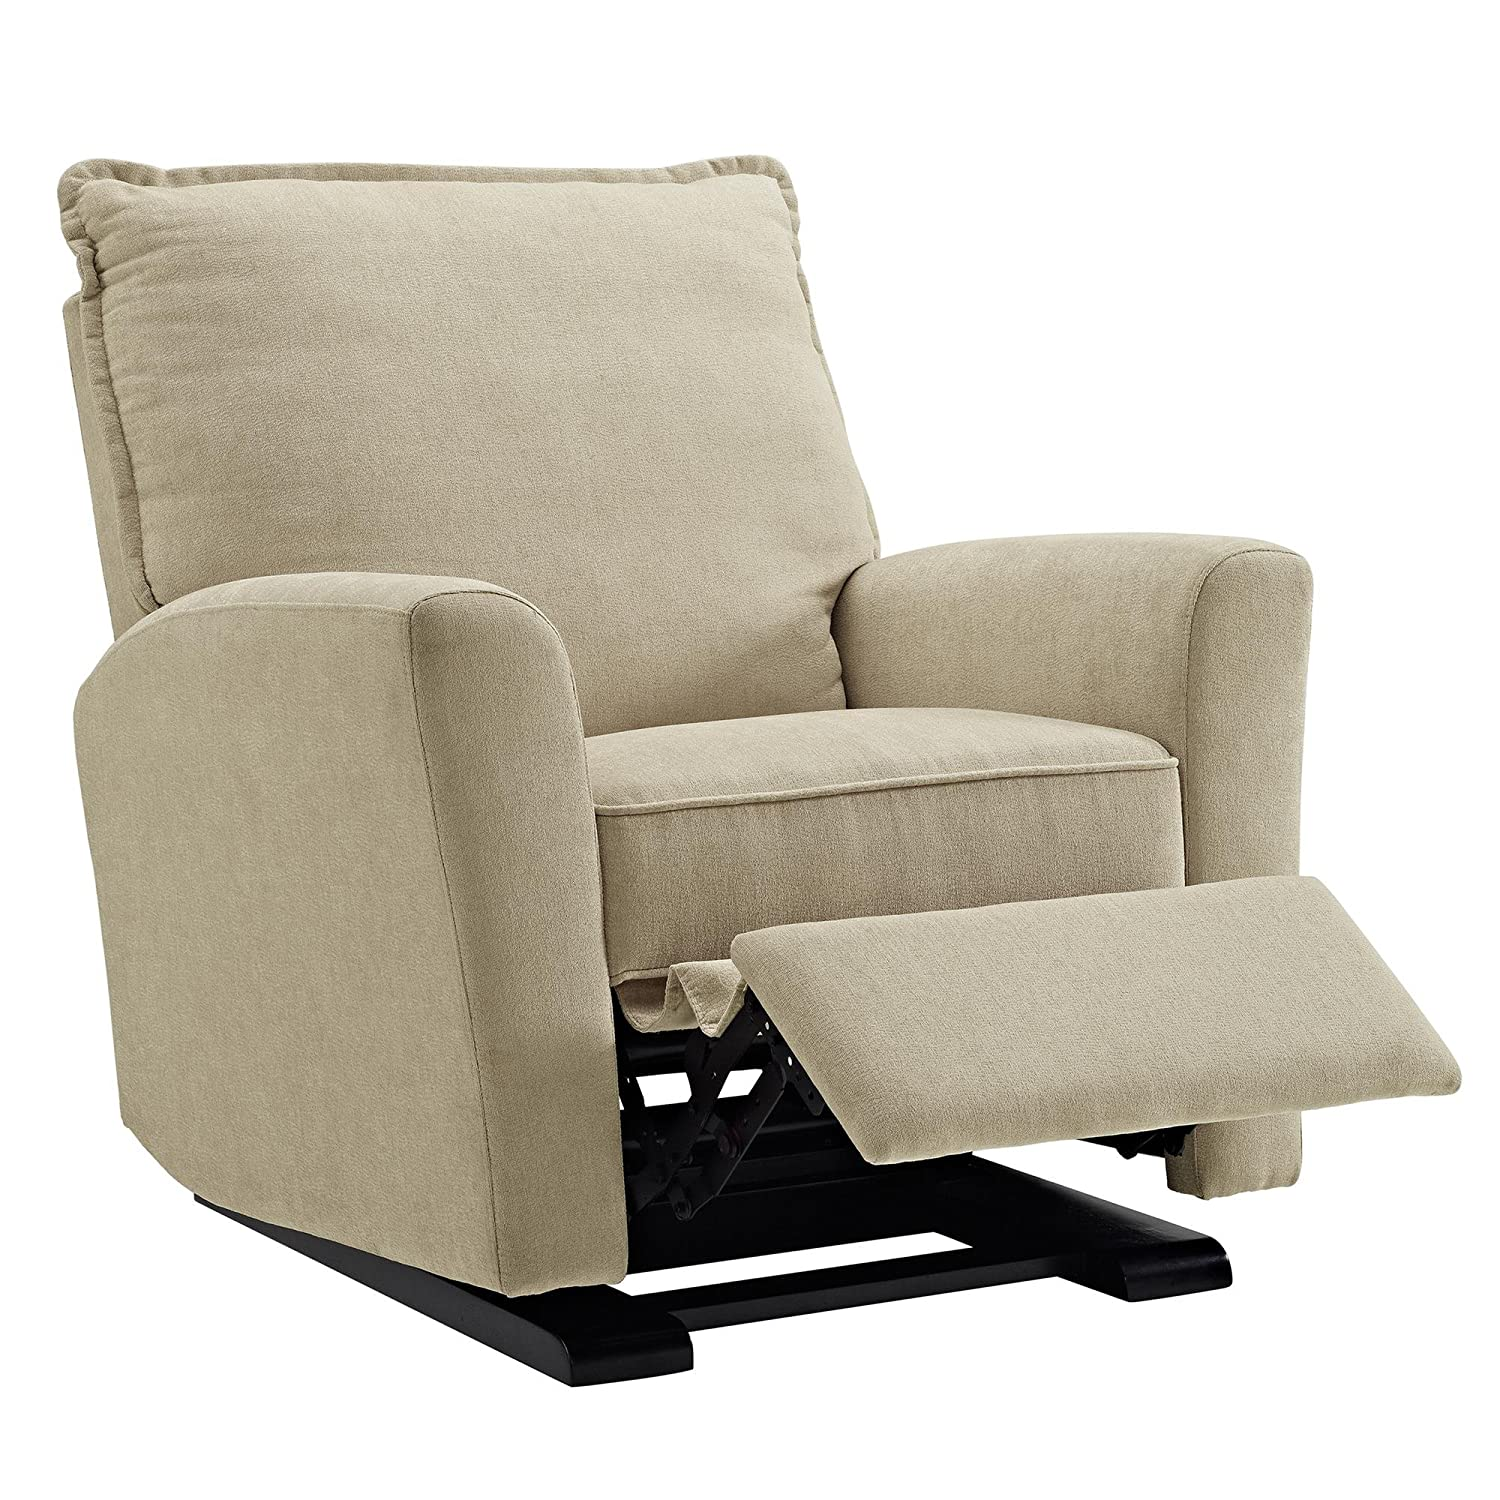 Amazon.com: Sillón Reclinable de deslizamiento Baby ...